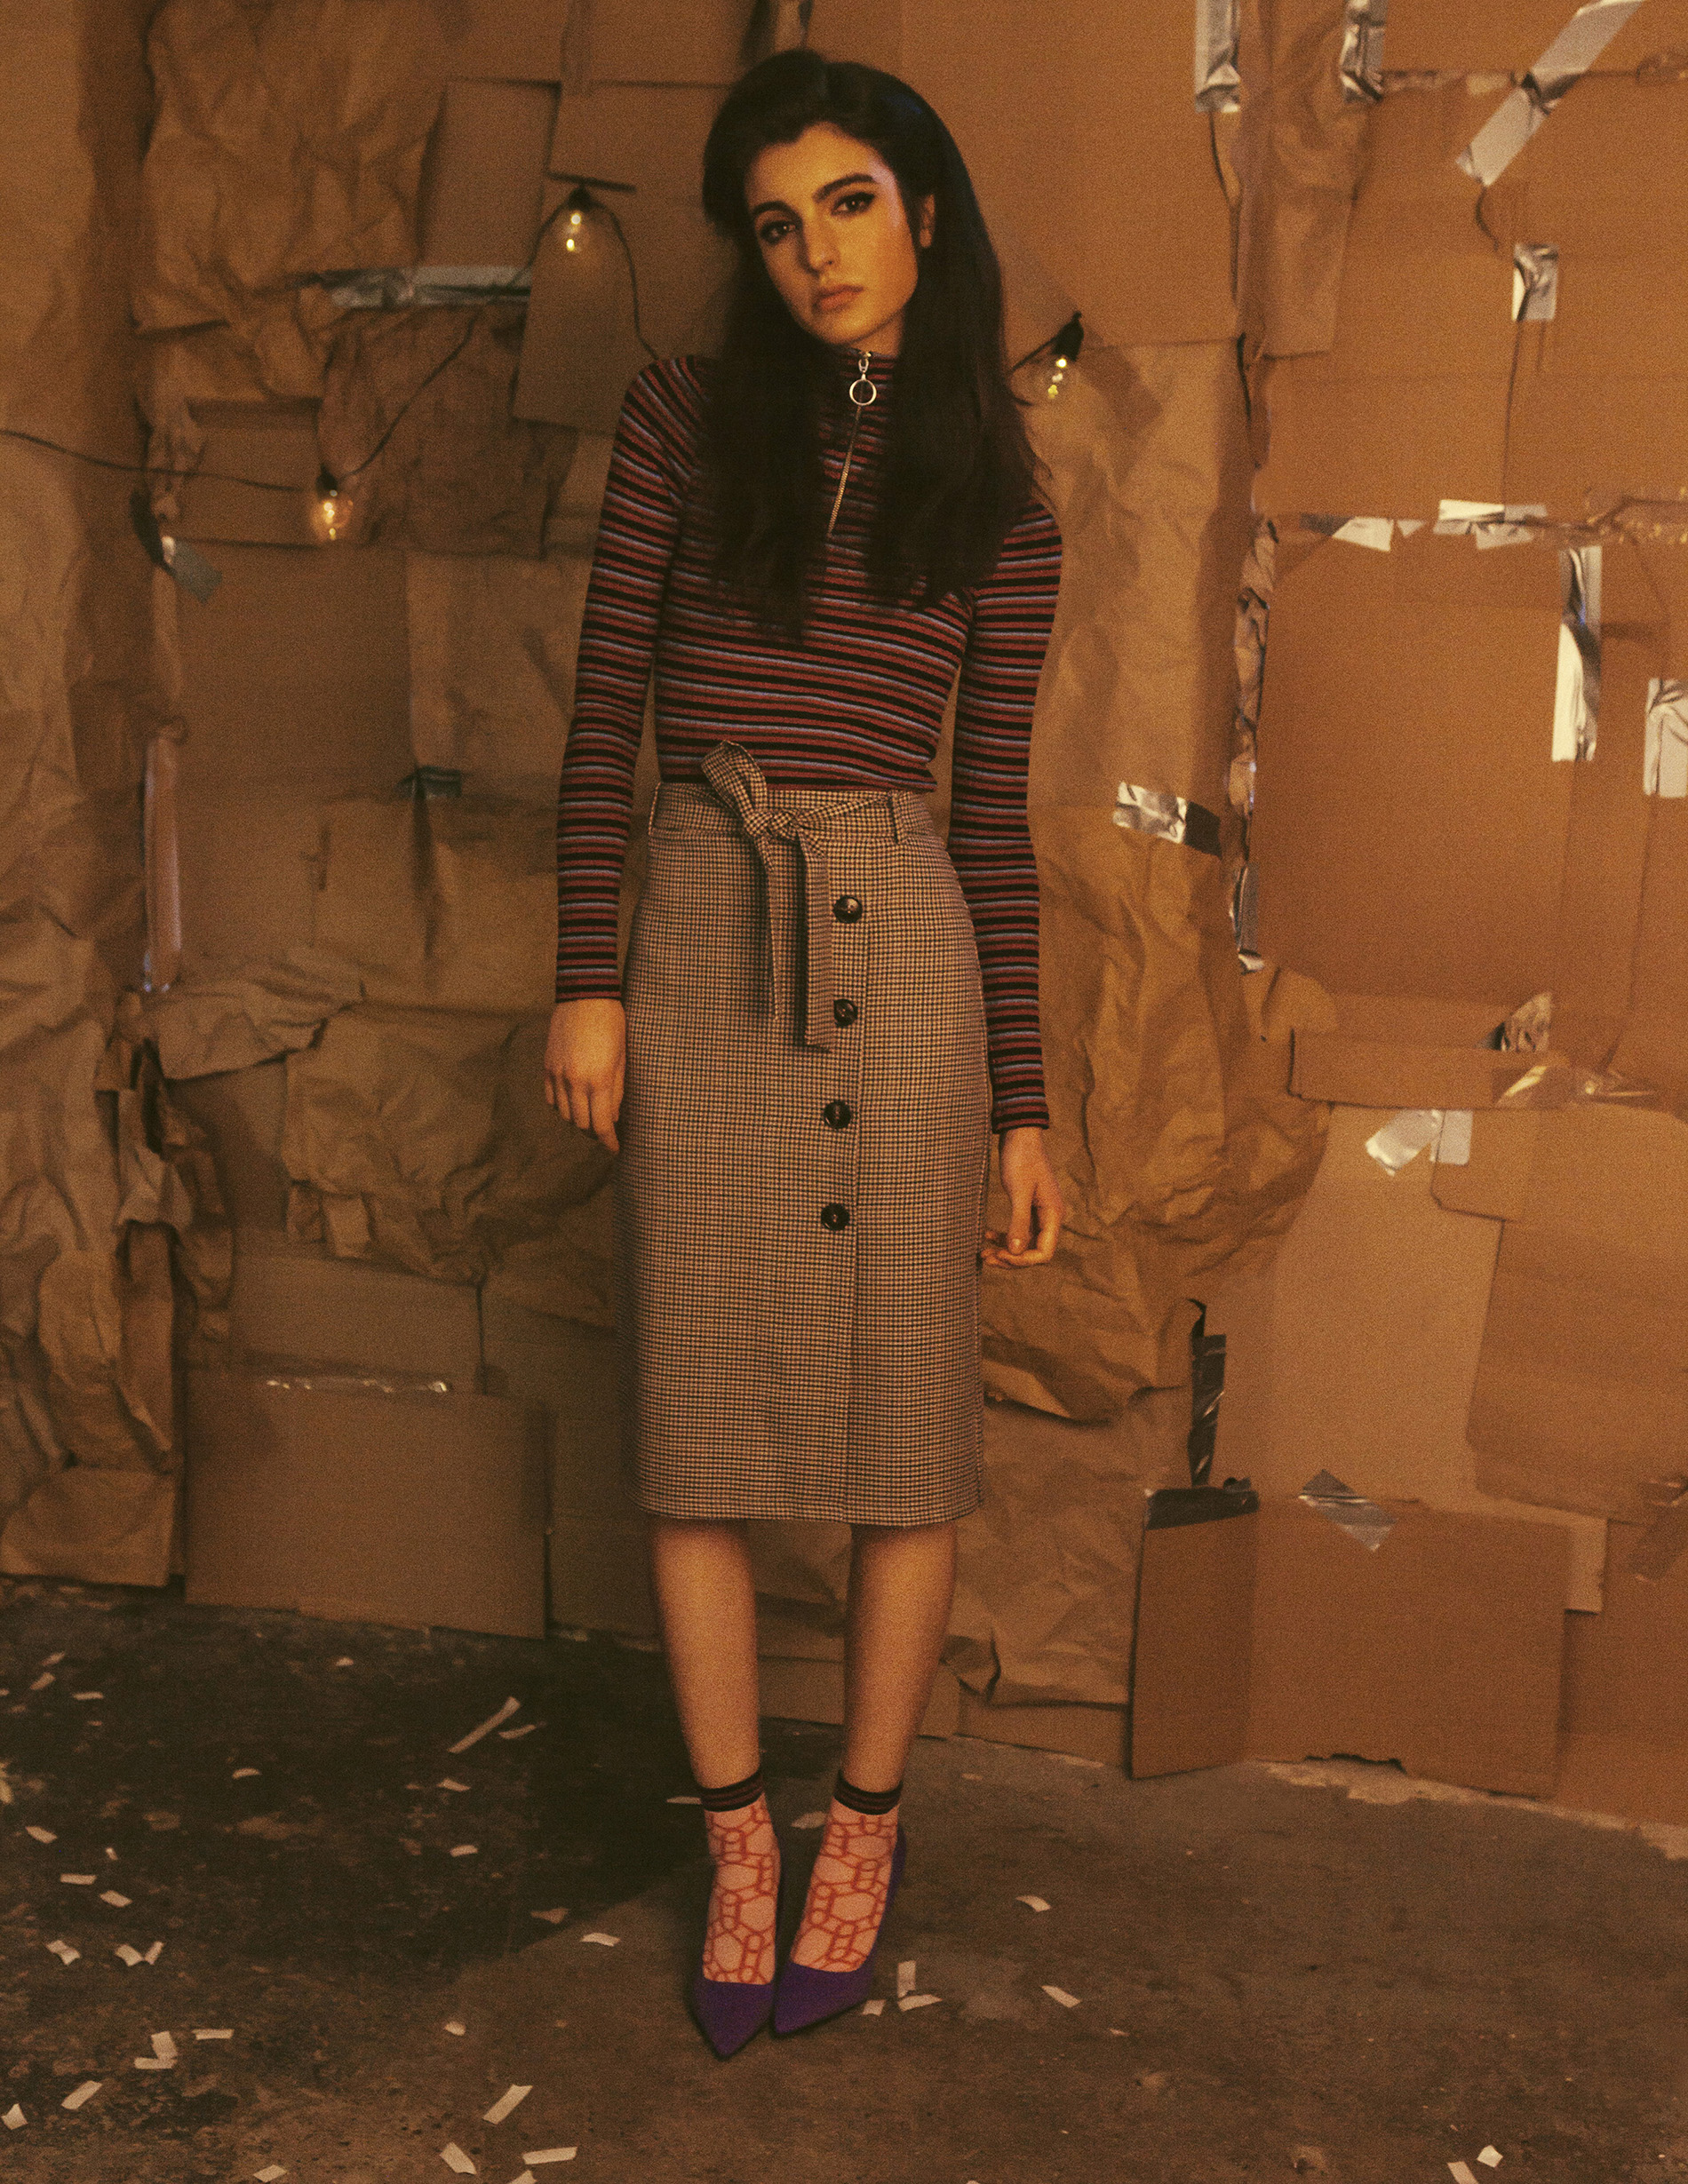 Stripe top Topshop check midi skirt Topshop  Heels and socks - Stylist's own